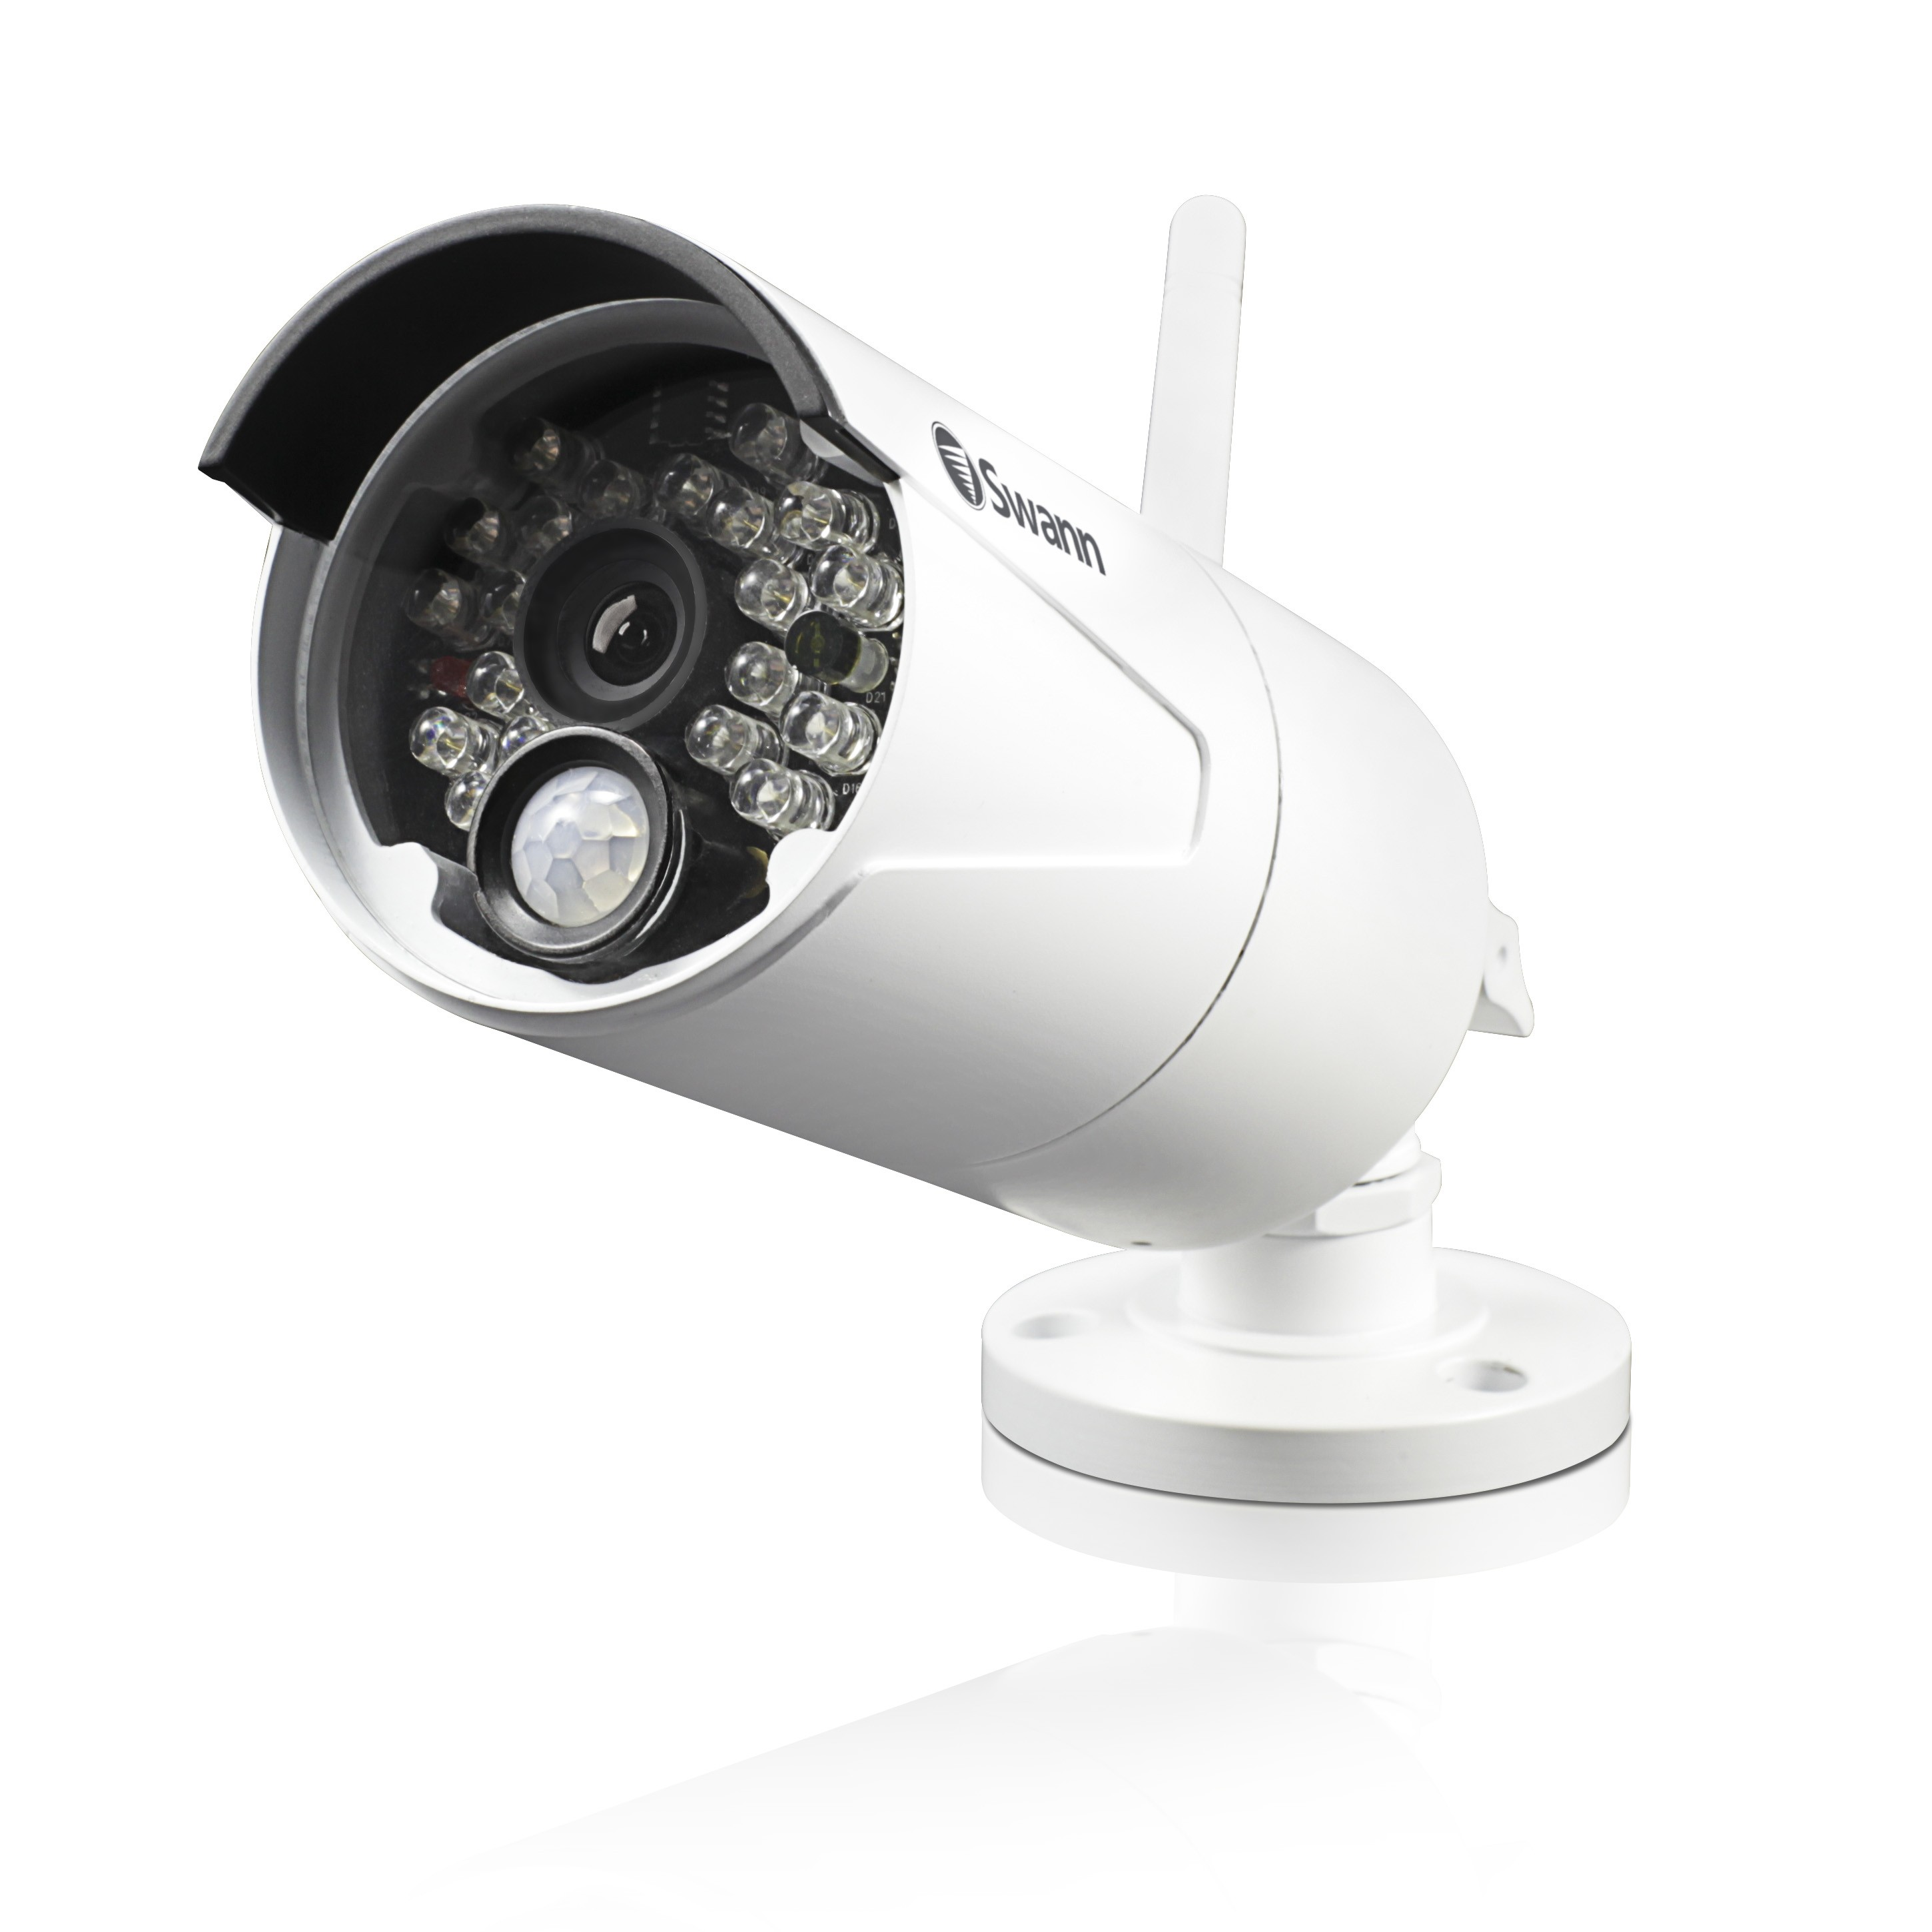 Digital Wireless Security System Monitor and Camera Kit Swann ADW-410